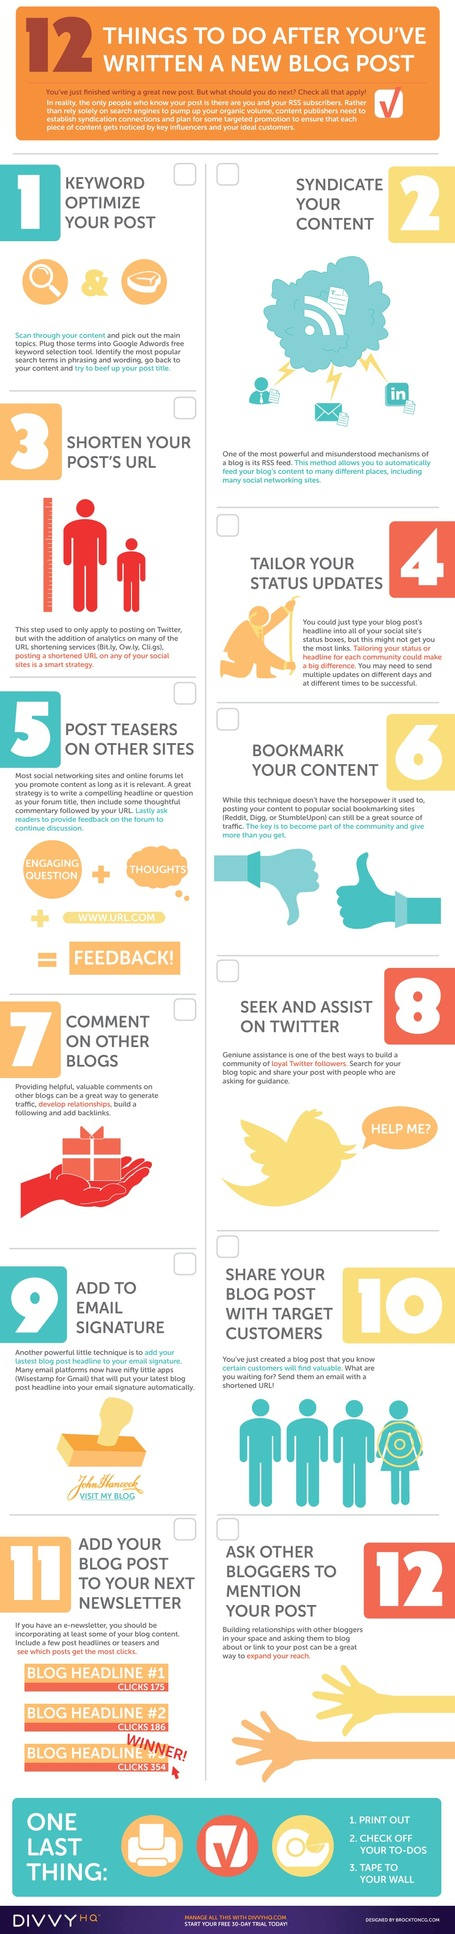 12 Things To Do After You've Published a New Blog Post | Infographic | AtDotCom Social media | Scoop.it